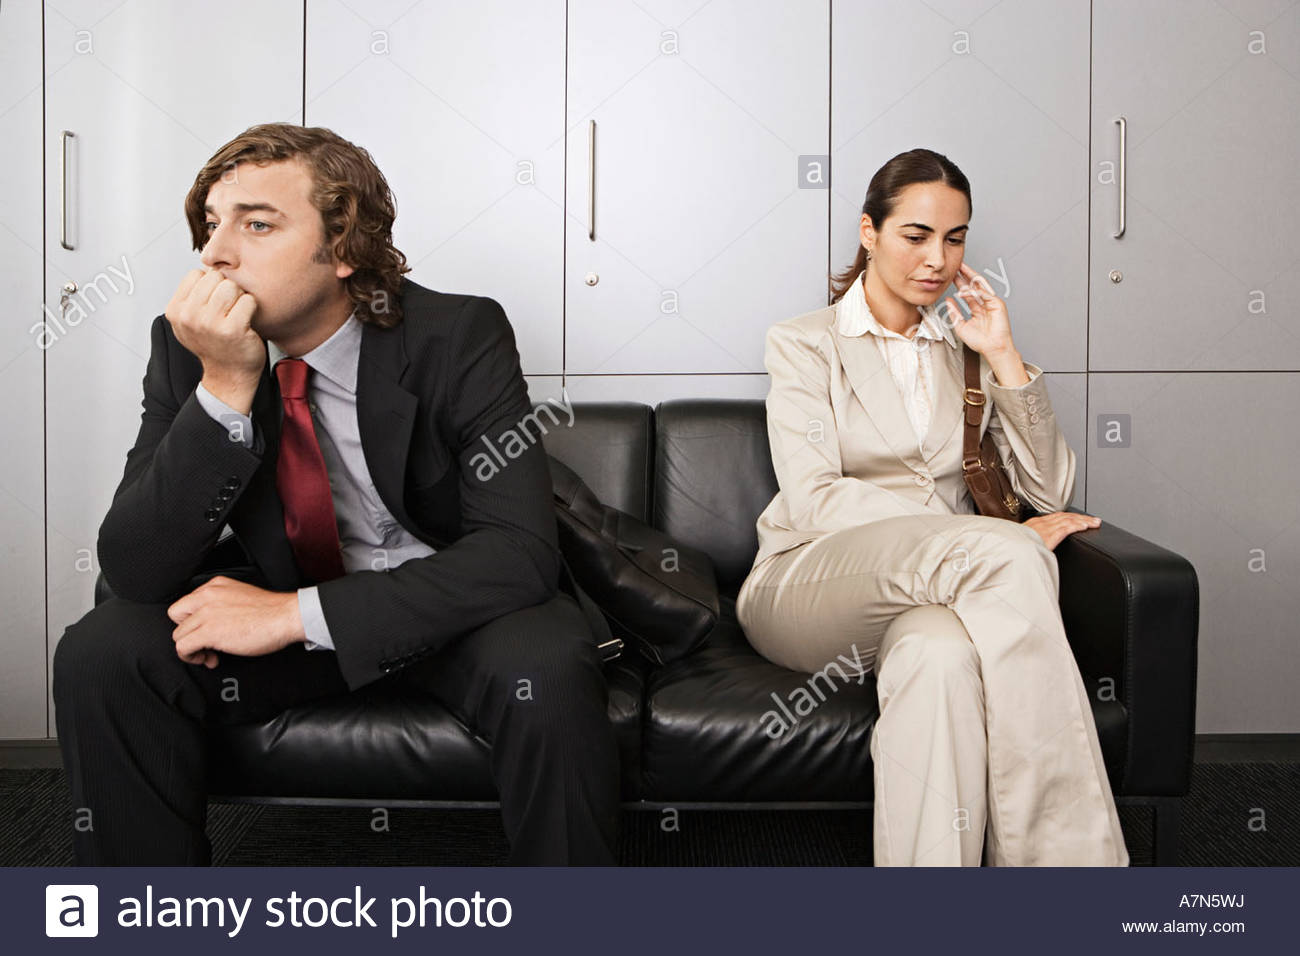 Anxious businessman and businesswoman sitting on sofa in office reception area waiting patiently - Stock Image